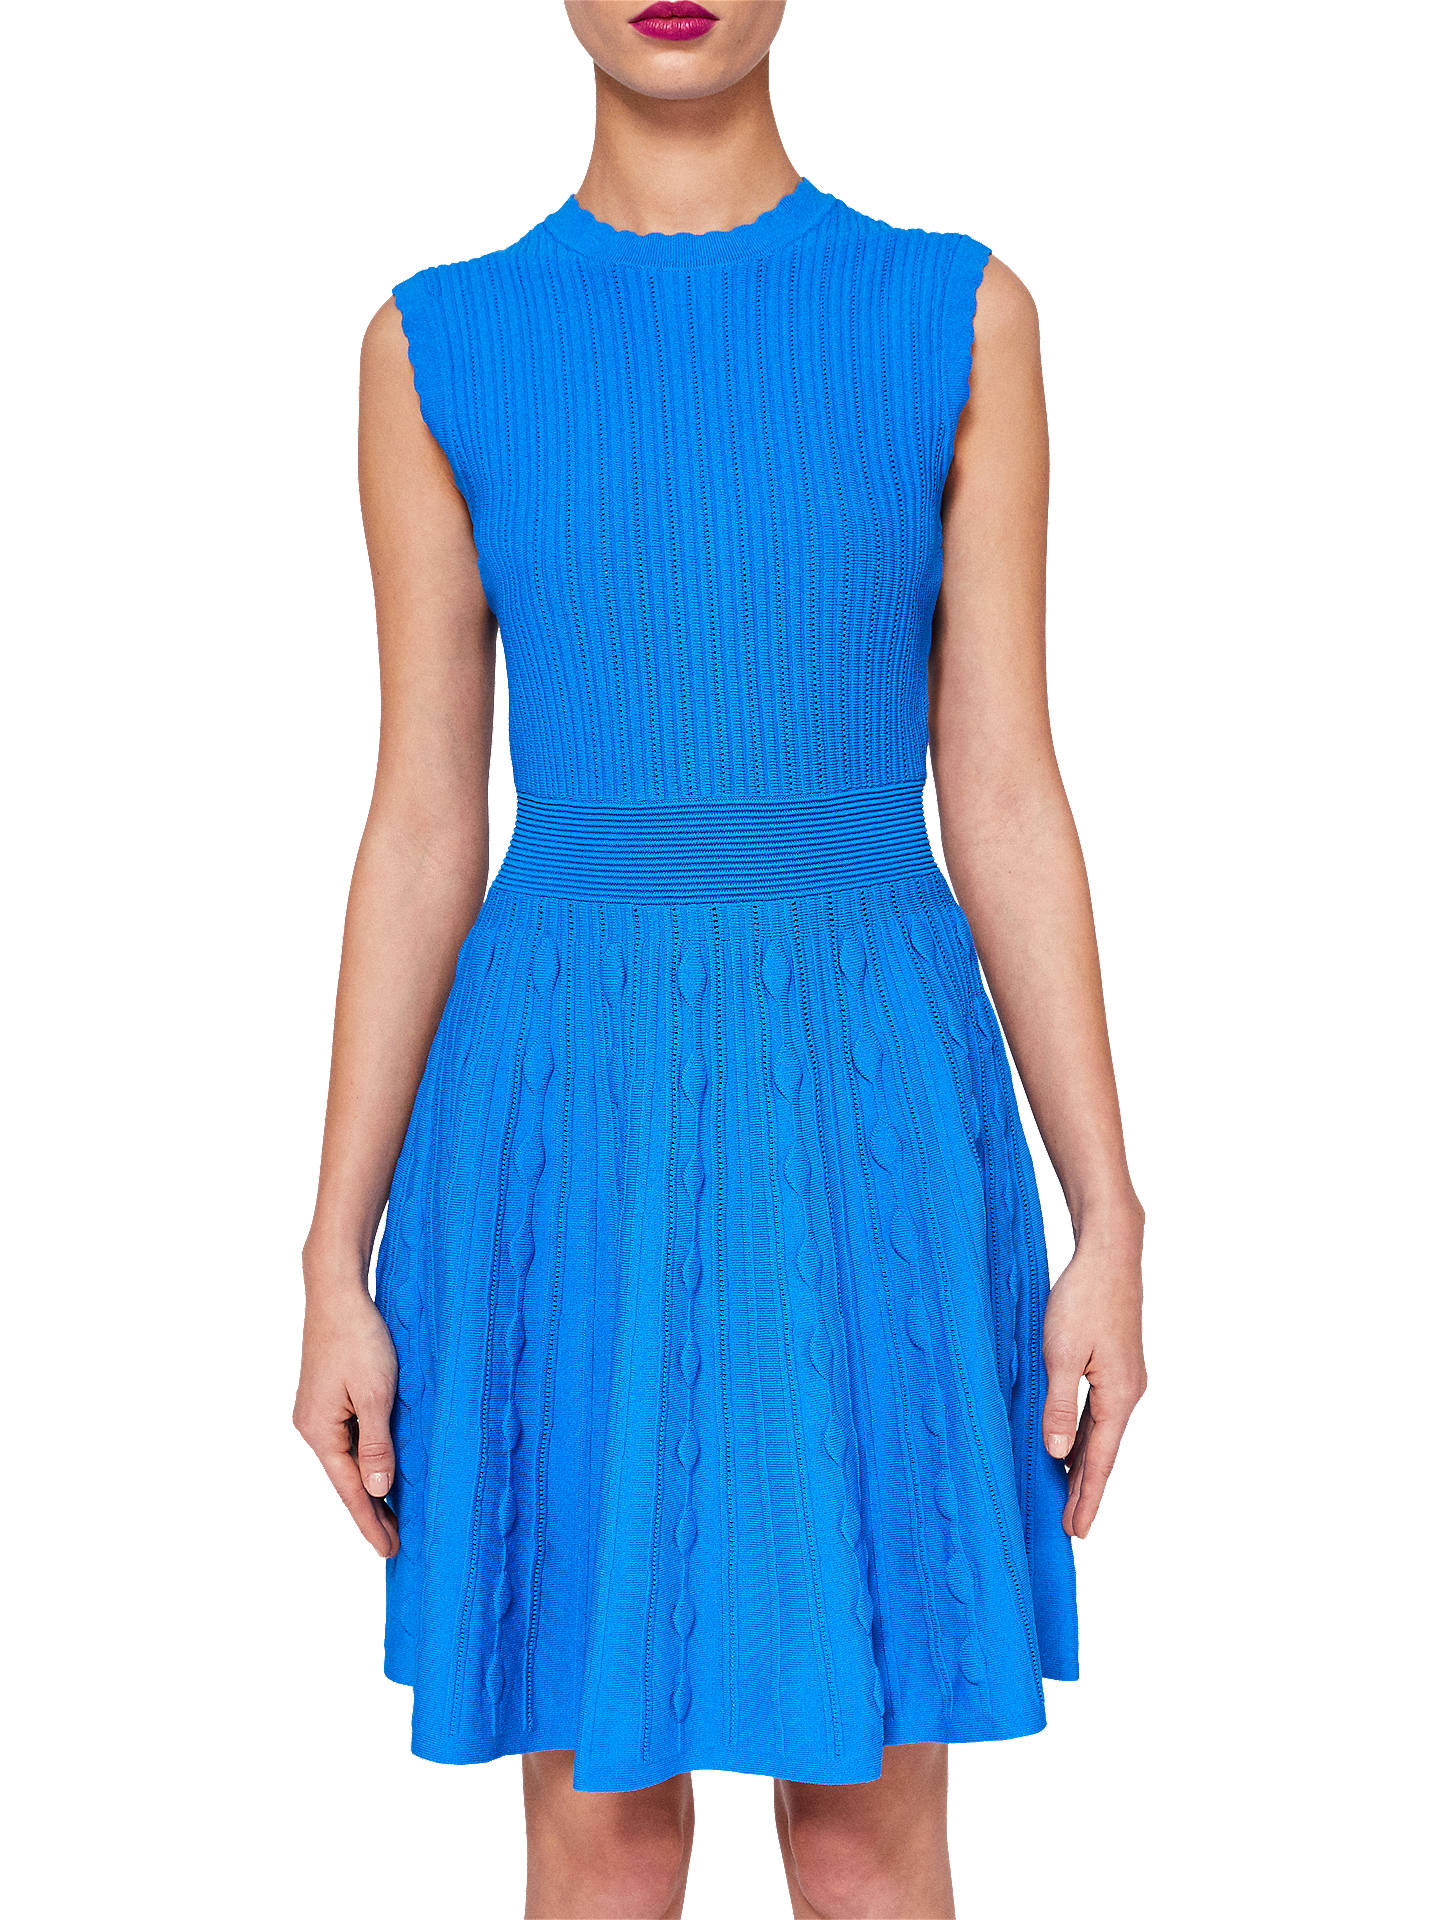 9abed9e10 Ted Baker Kamylia Scallop Edge Knitted Skater Dress